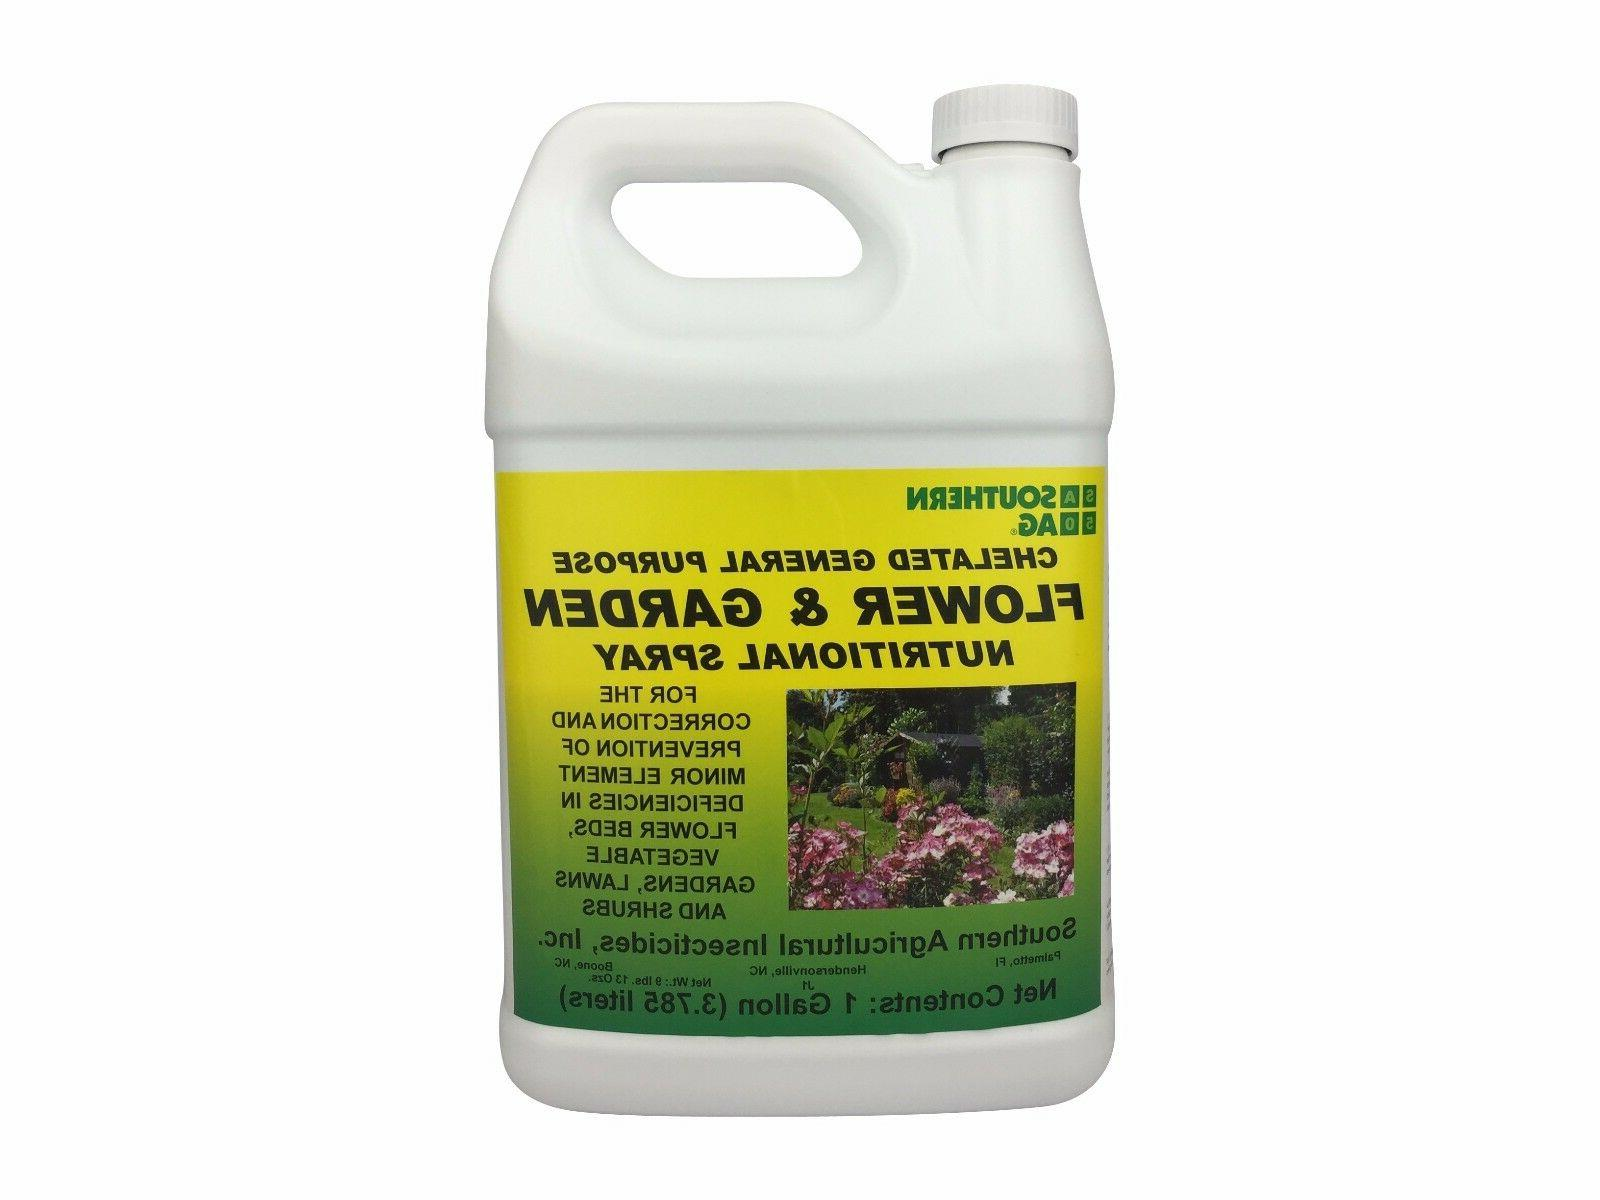 chelated general purpose flower and garden nutritional